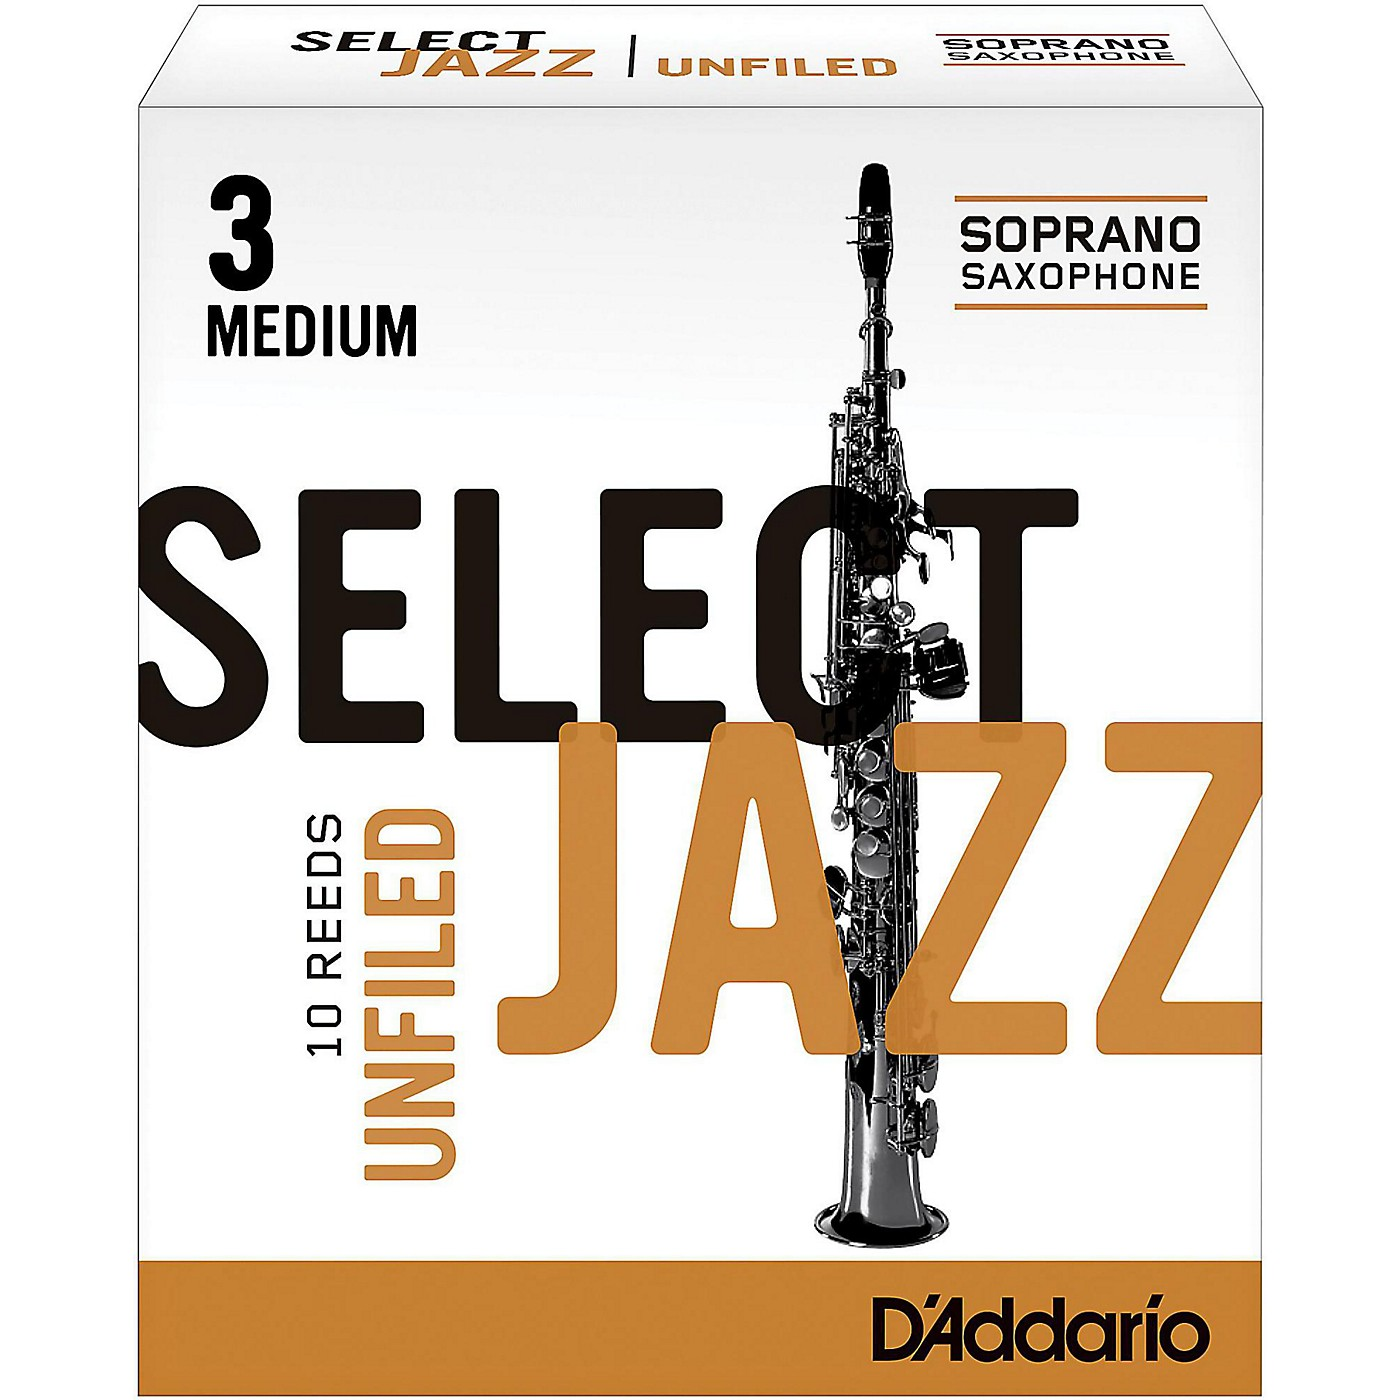 D'Addario Woodwinds Select Jazz Unfiled Soprano Saxophone Reeds thumbnail